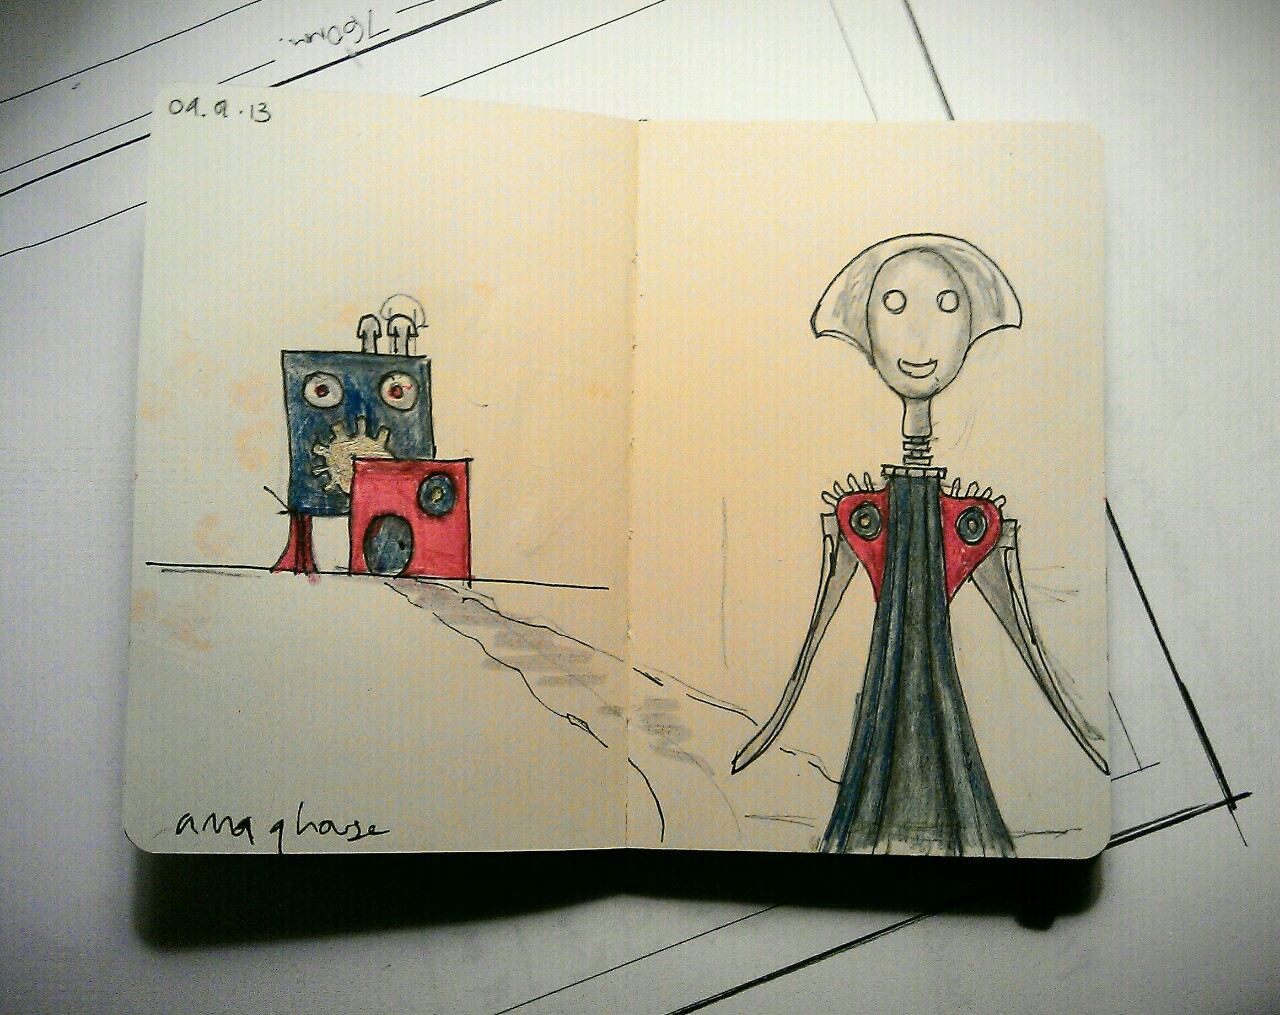 365 drawings later … day 344 … anna g house [if she had one]